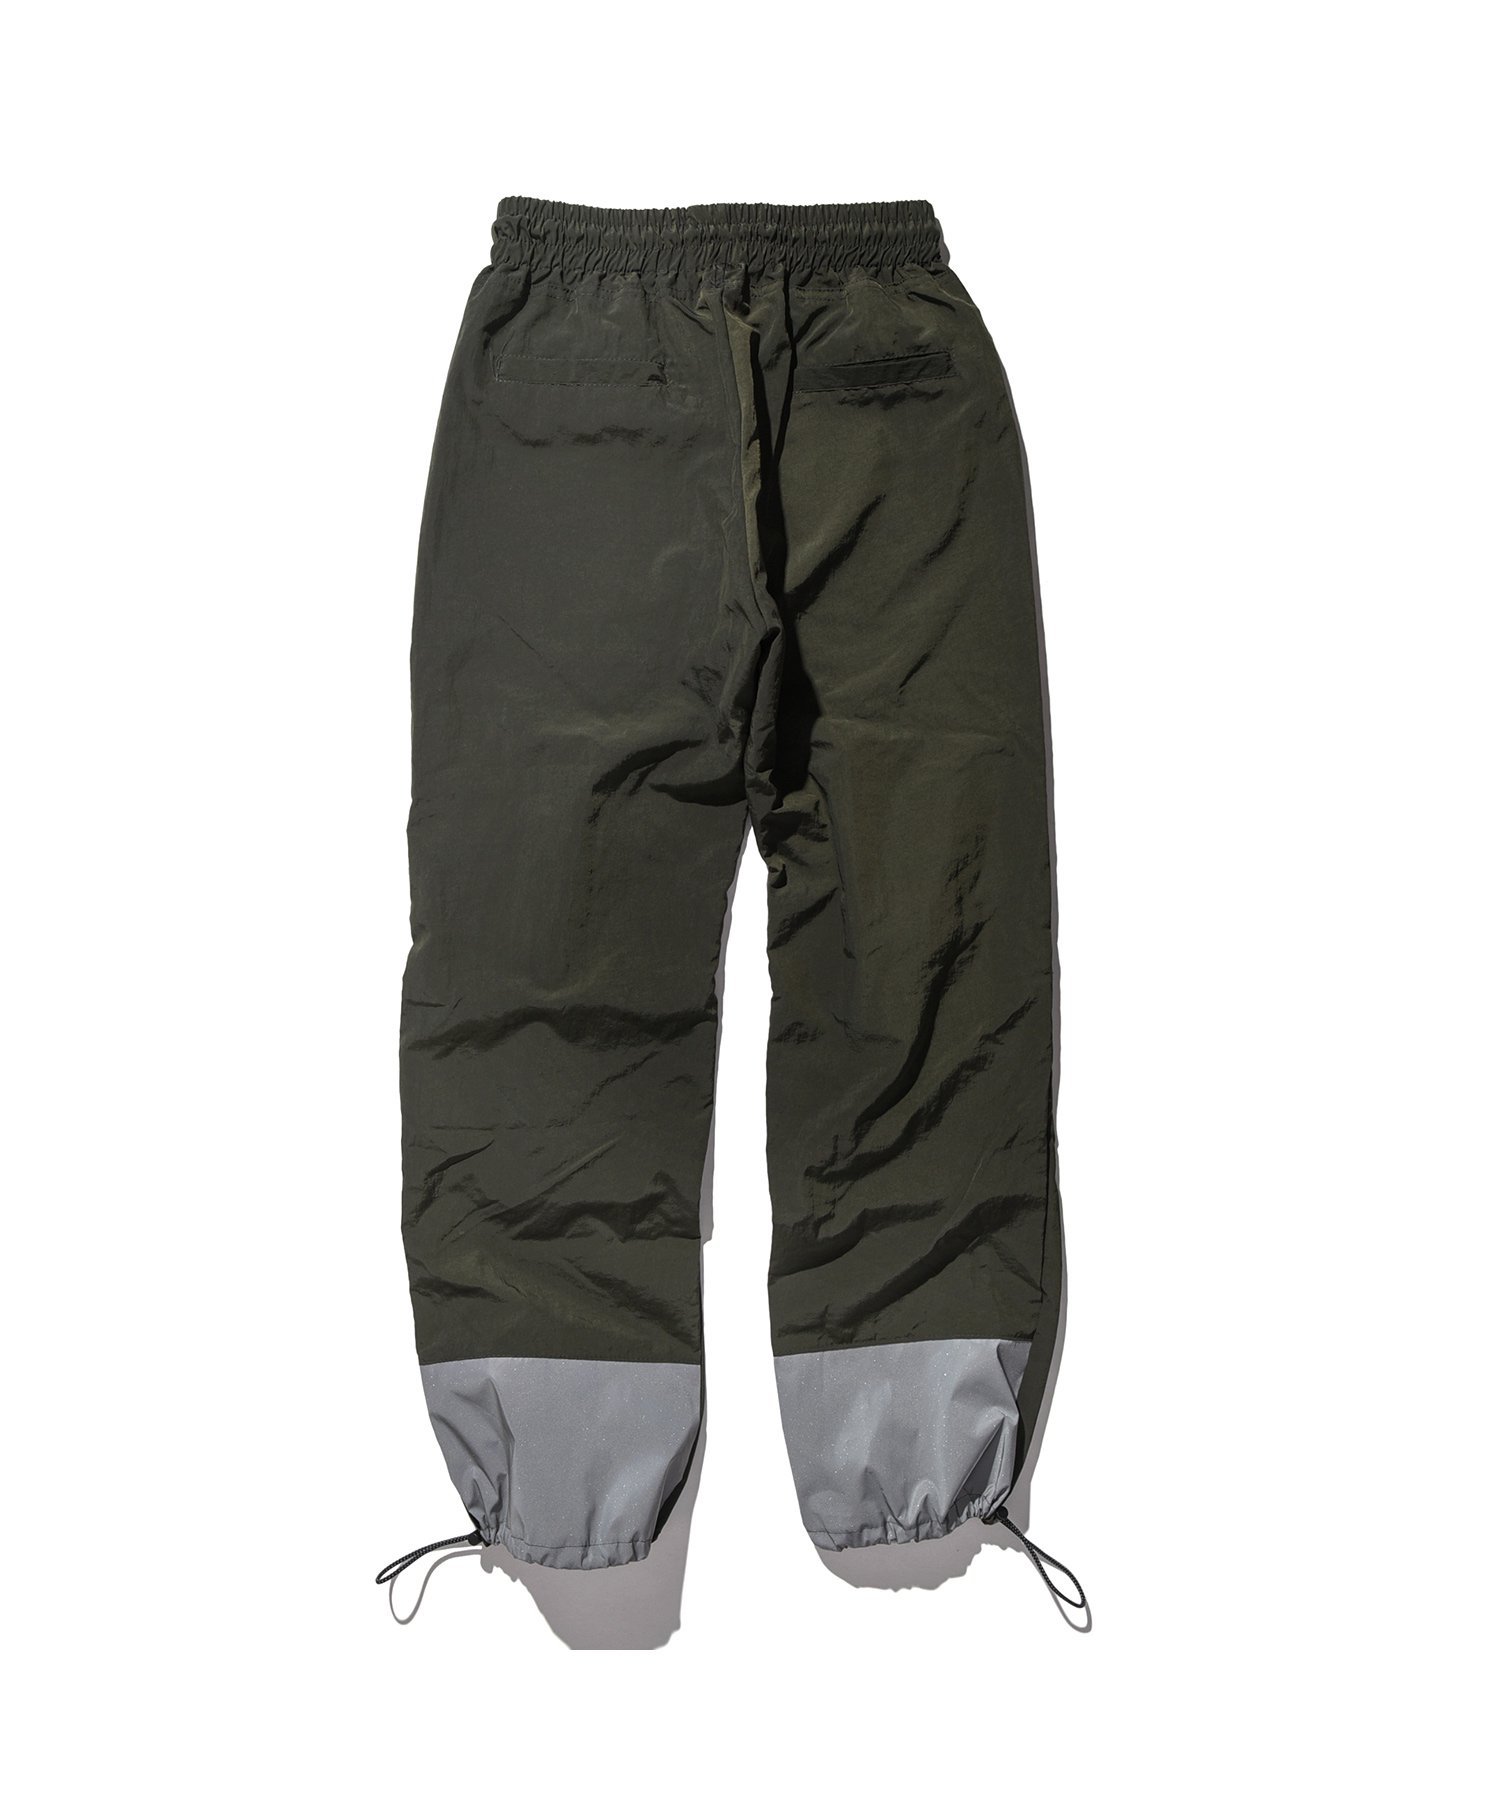 REFLECT CODE NYLON TROUSERS